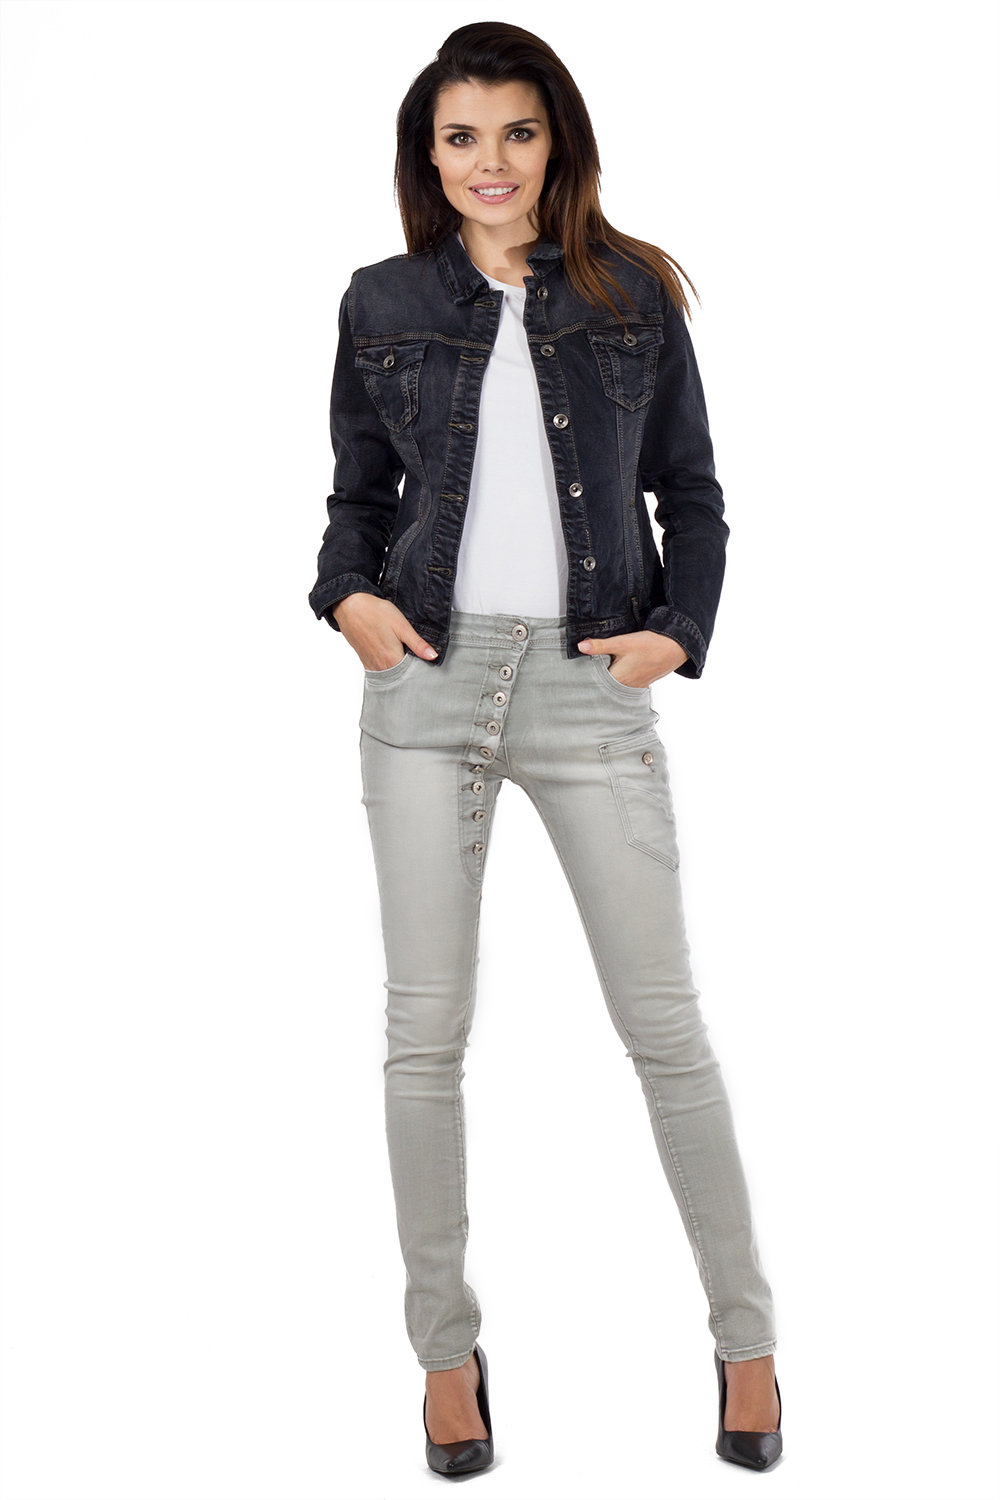 New Ladies Womens Black Faded Fitted Stretch Denim Jacket Jeans